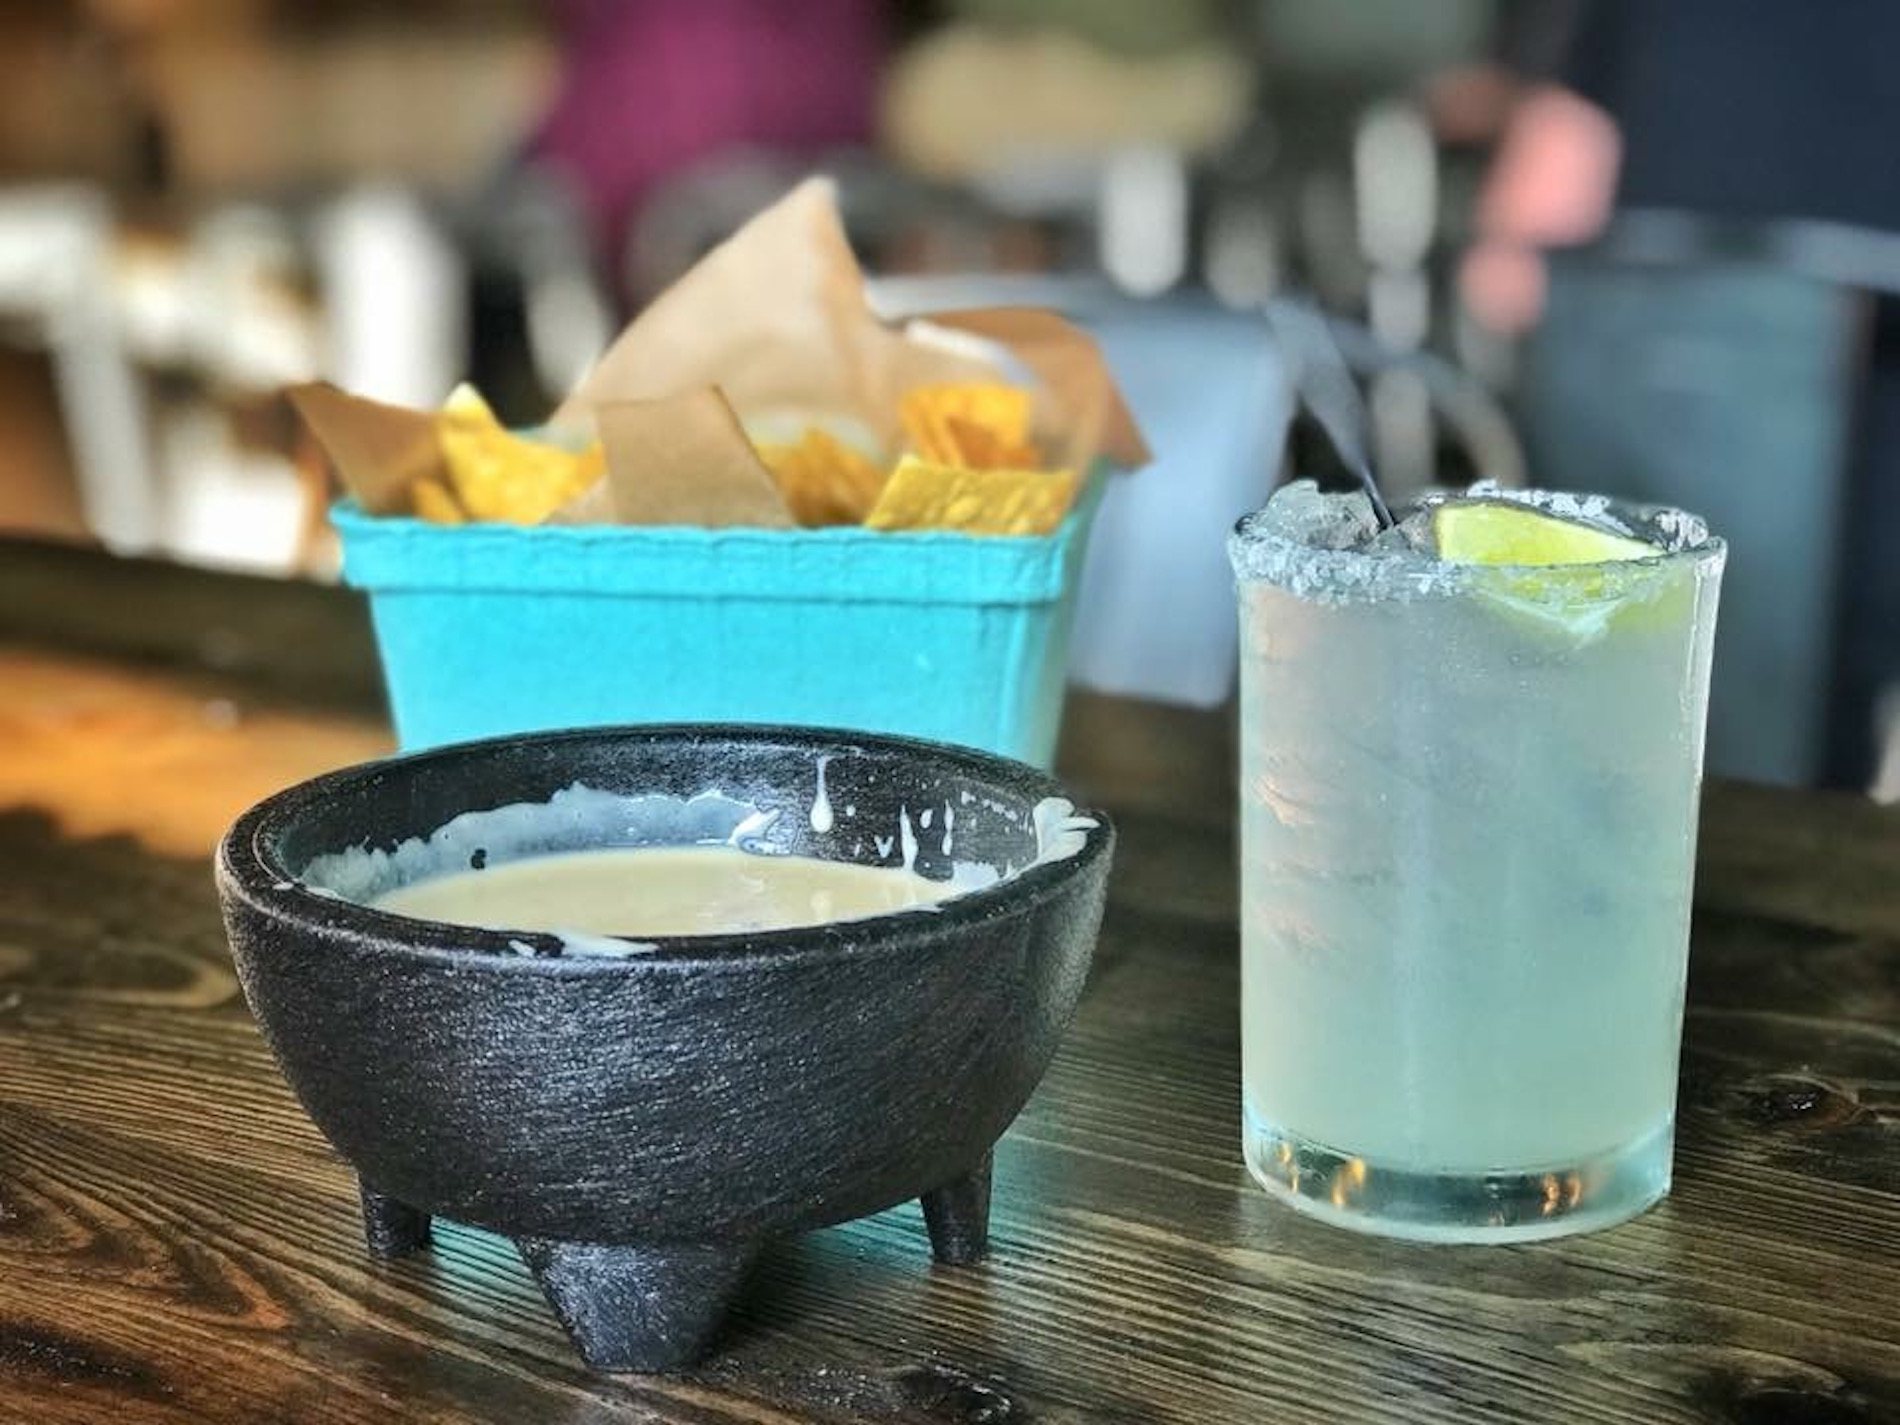 Nectar Urban Cantina Donelson Hermitage Restaurants and Shopping